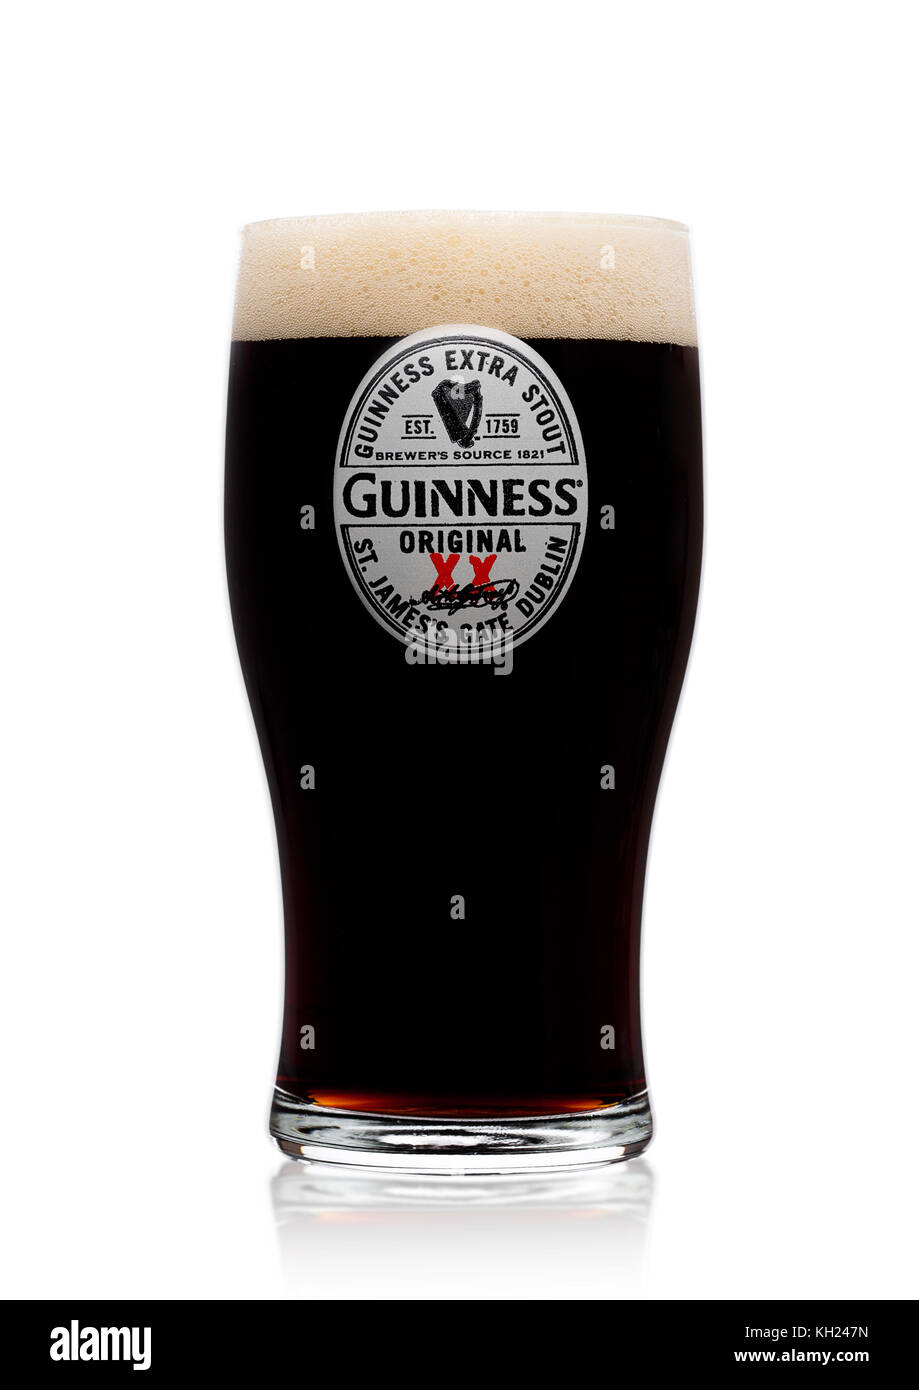 LONDON, UK - NOVEMBER 10, 2017: Glass of Guinness original beer on white background. Guinness beer has been produced - Stock Image